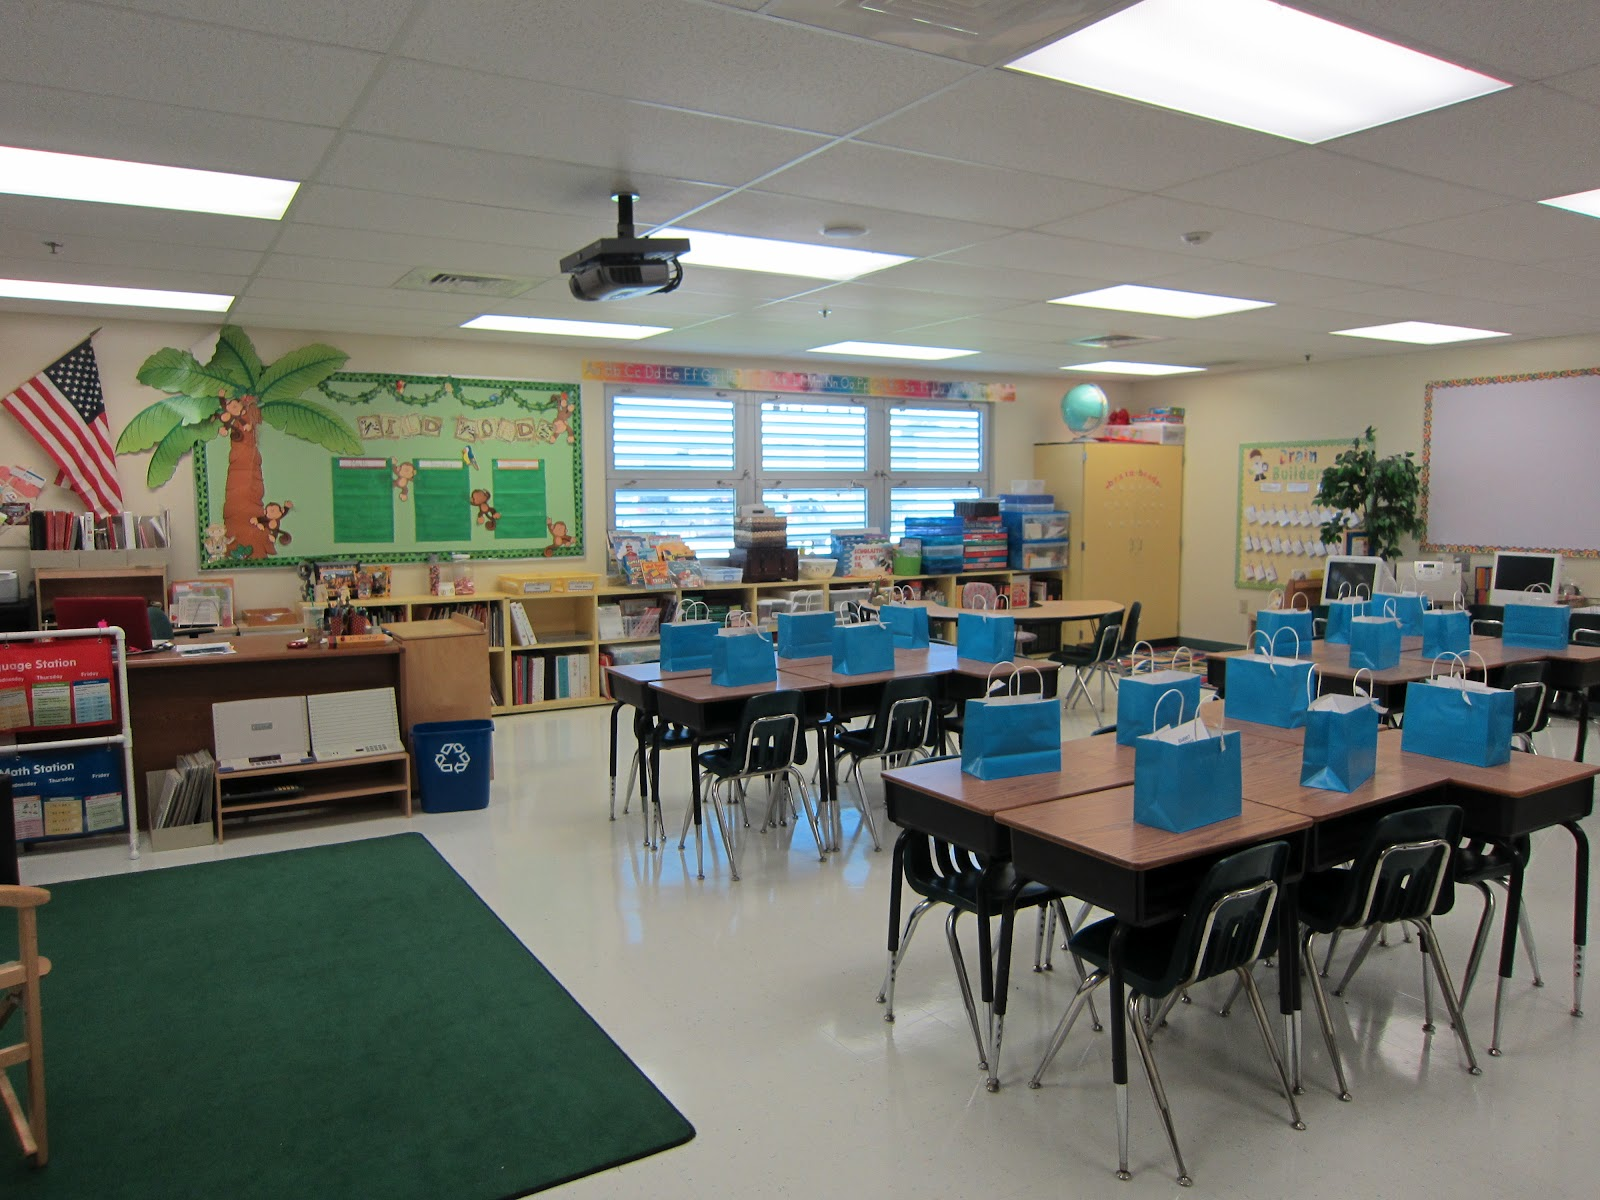 Classroom Tour 2012 - Sunny Days in Second Grade